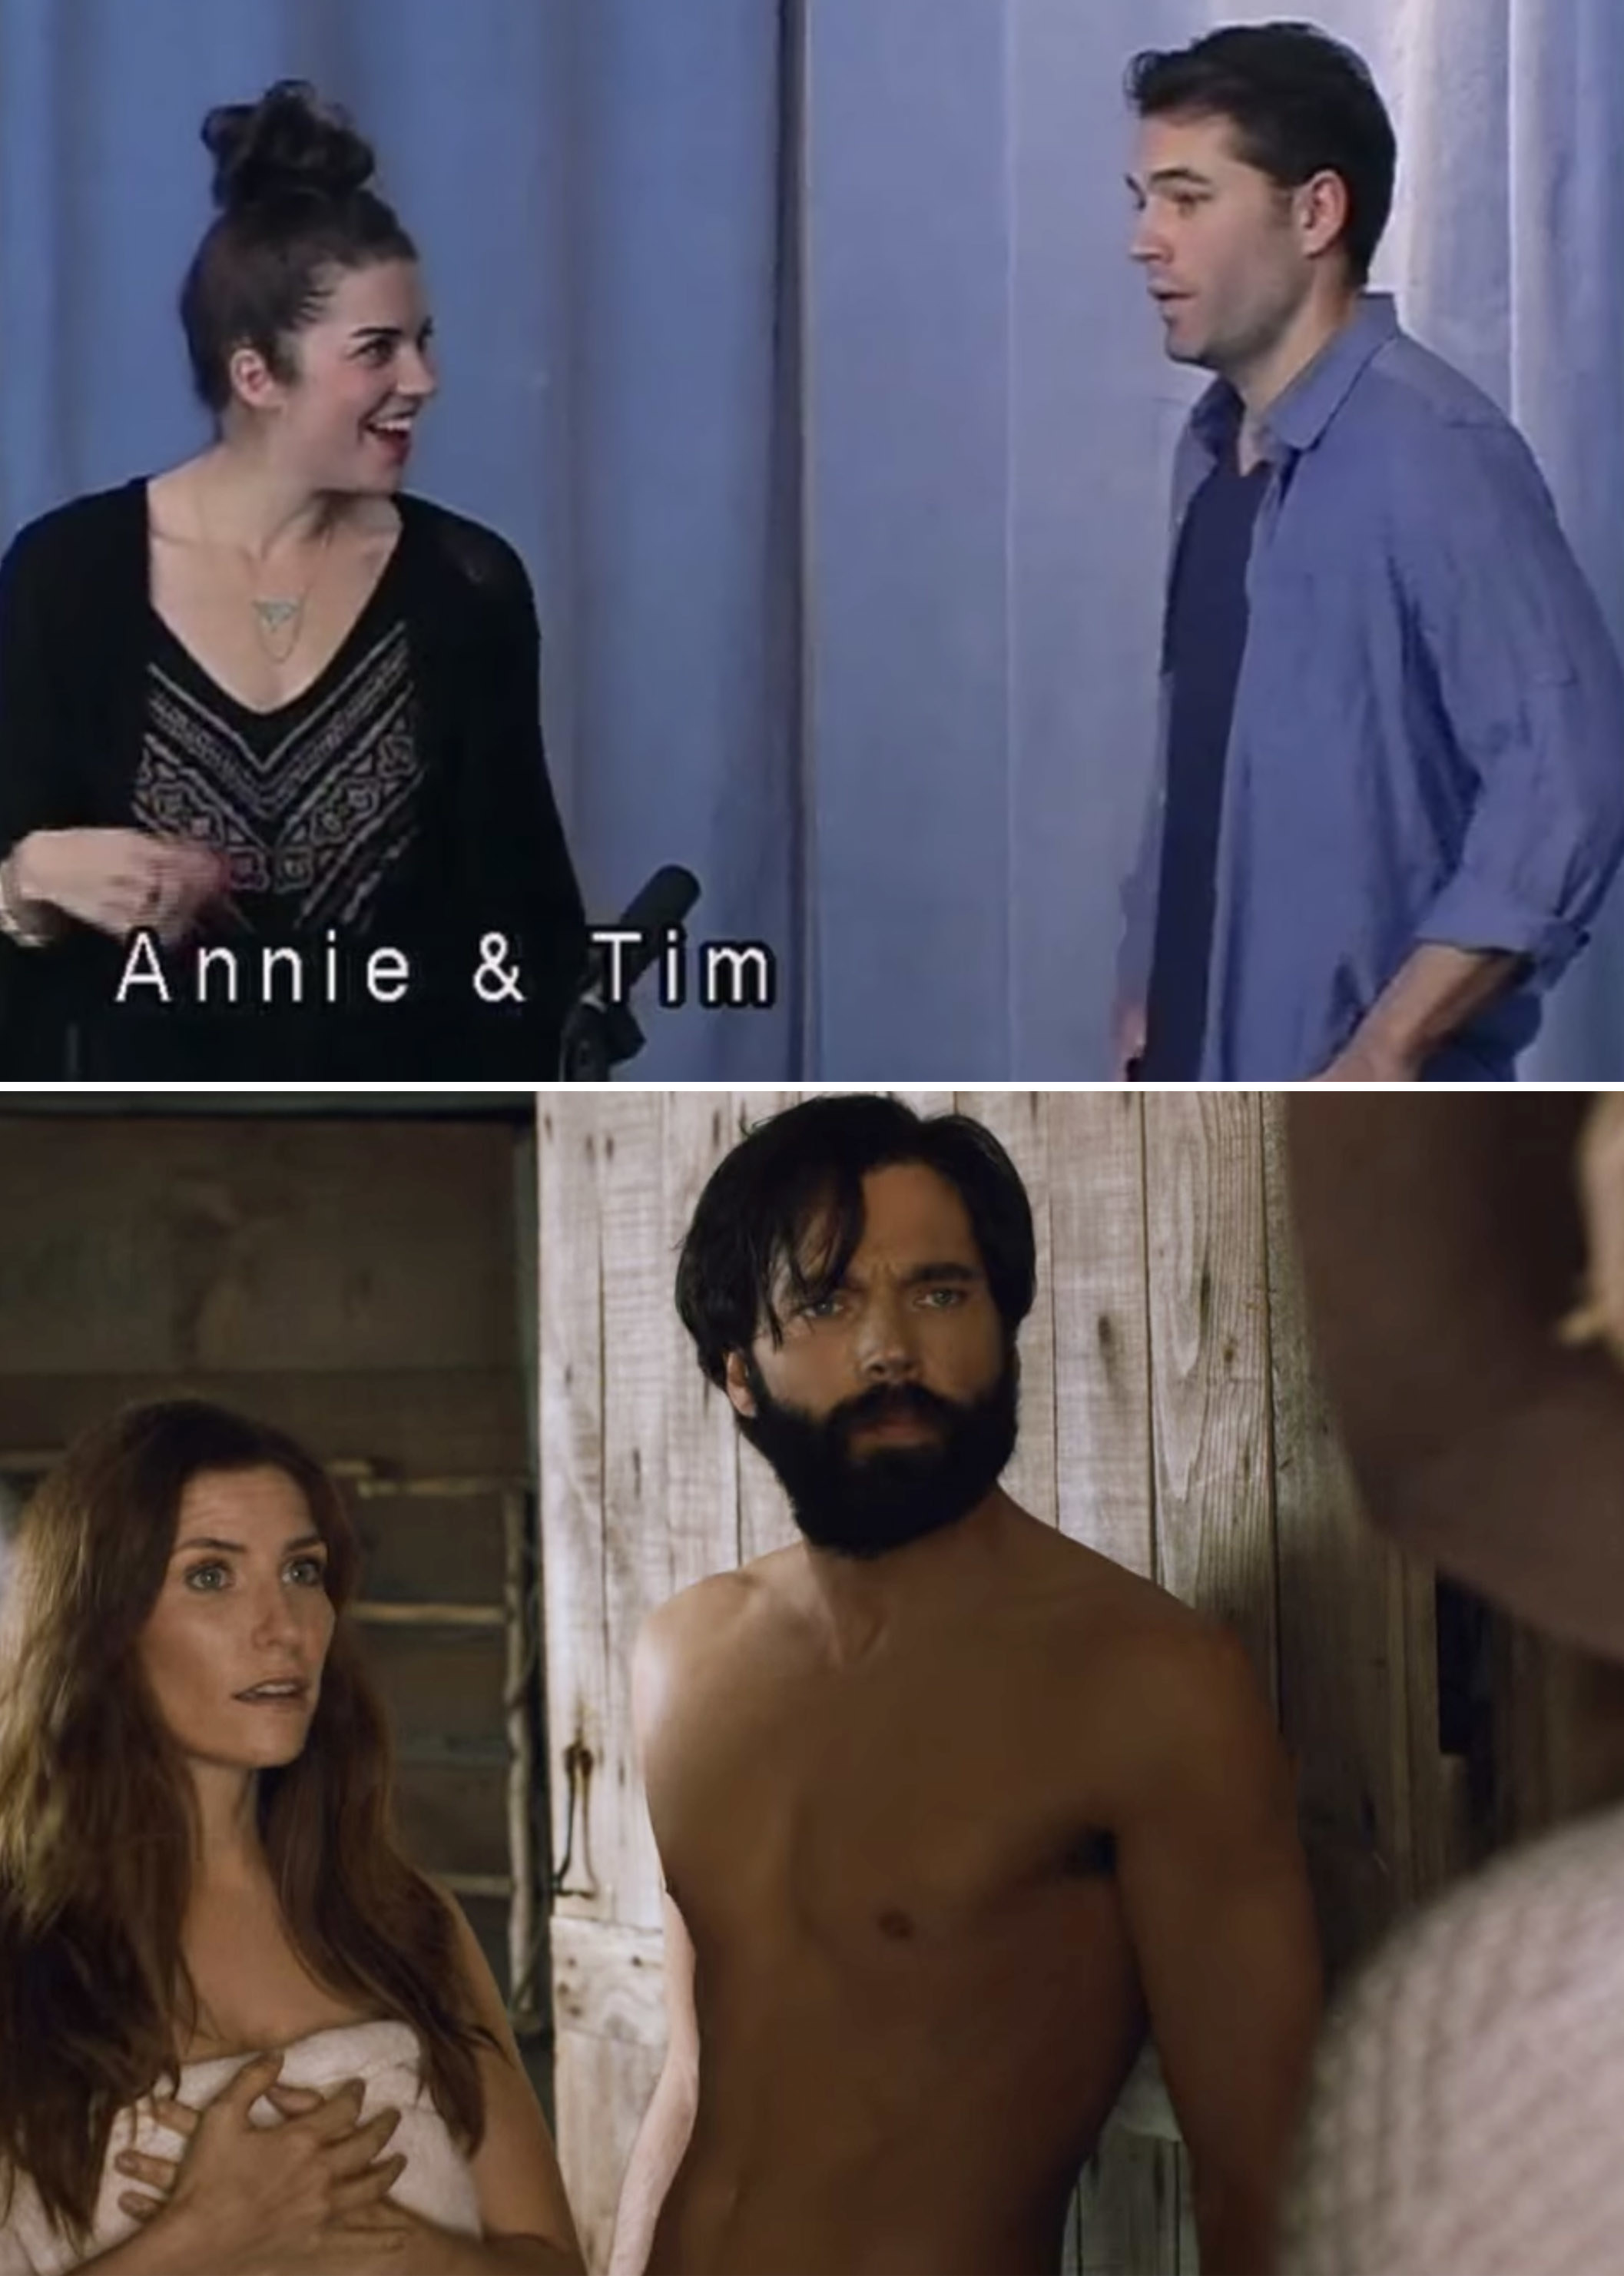 Annie and Tim in their audition vs. Twyla, Mutt, and Alexis in the actual scene